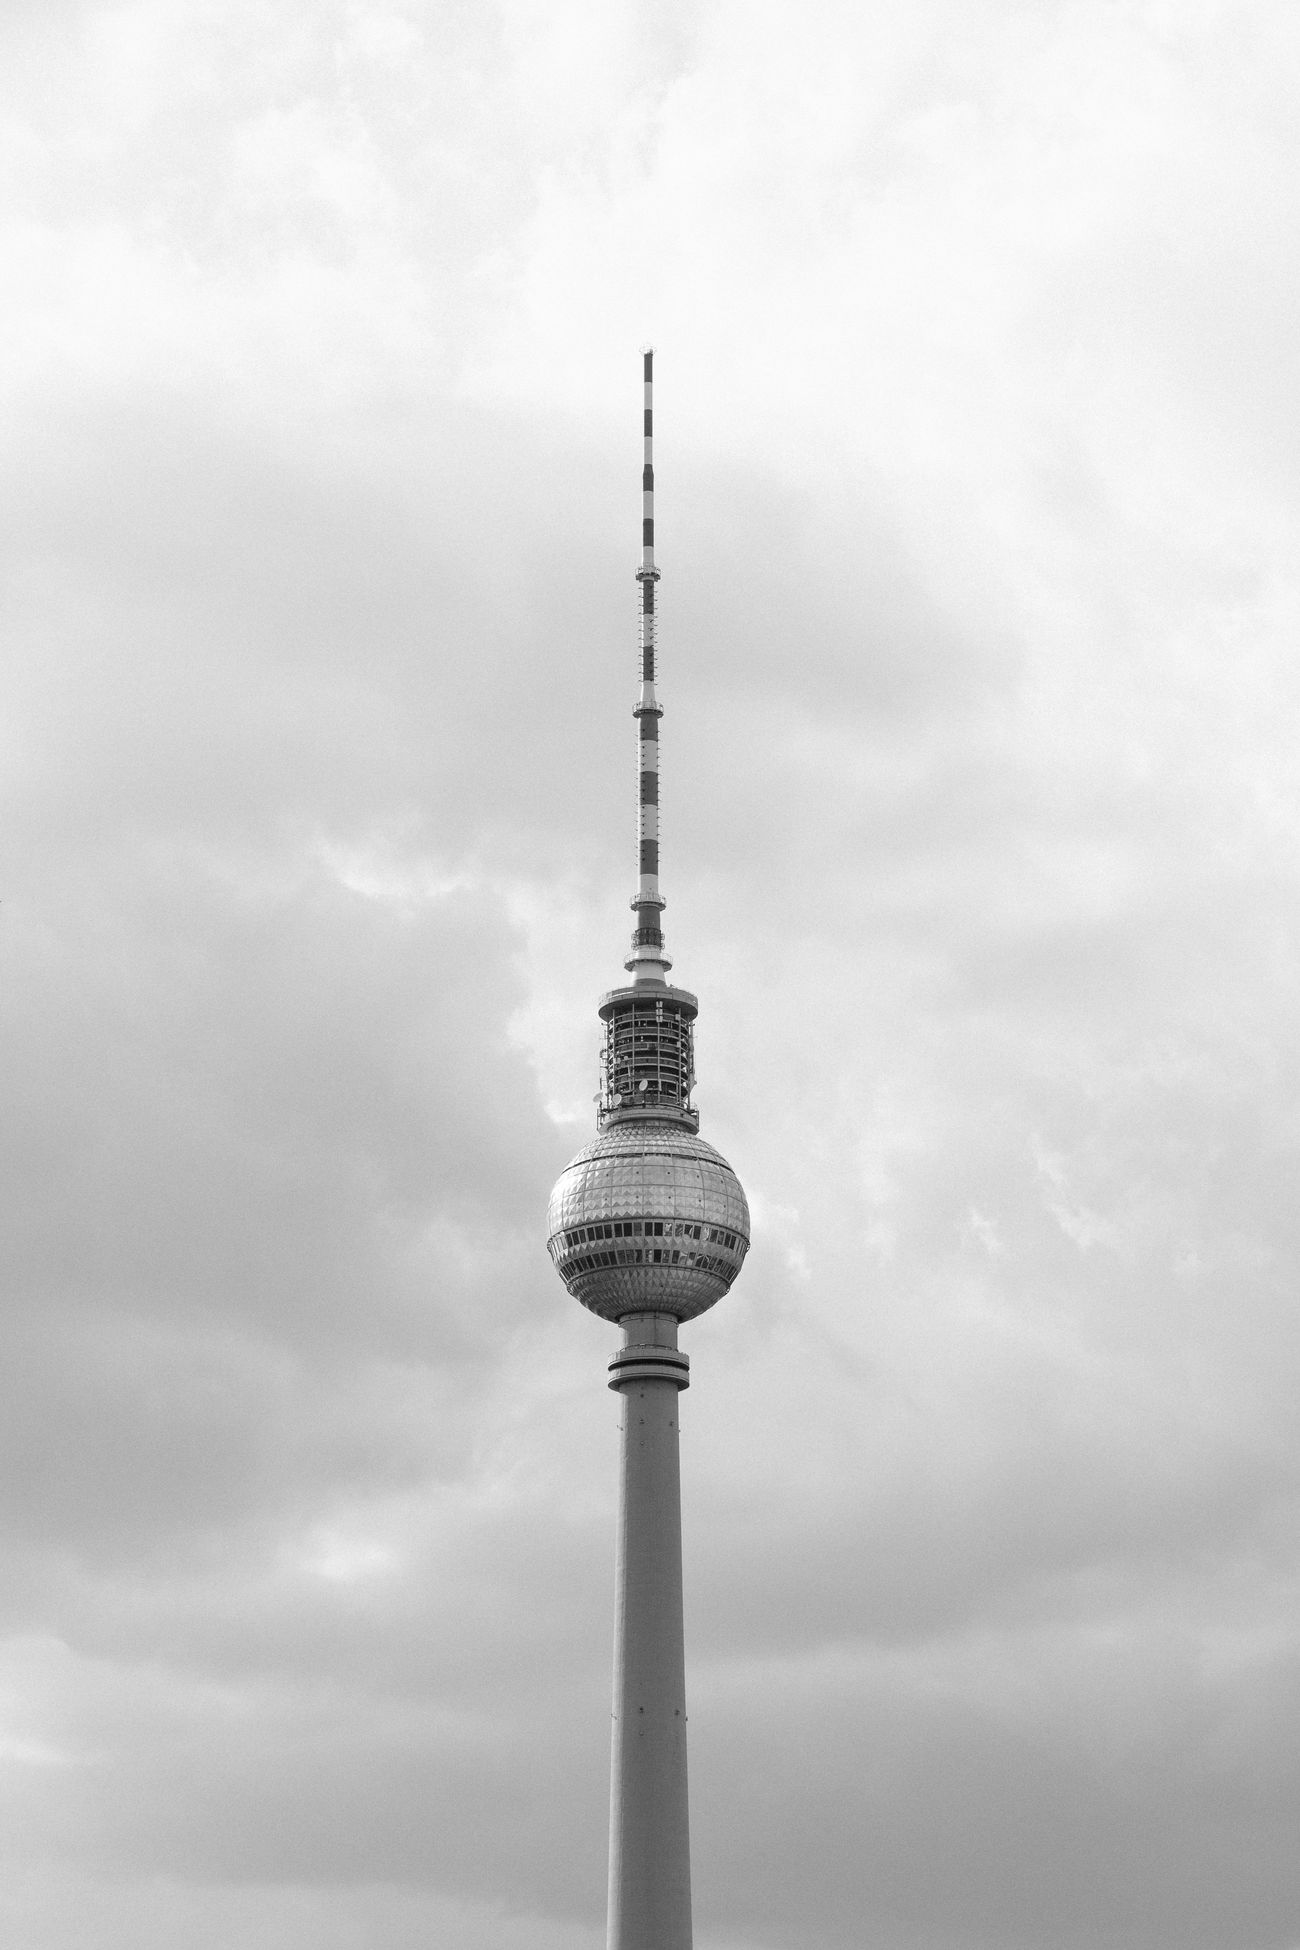 Antenna Berlin Black And White Blackandwhite Broadcasting Monochrome Monochrome Photography Outdoors Sehenswürdigkeit Sight Travel Destinations Tv Antennas TV Tower Tv Tower Berlin